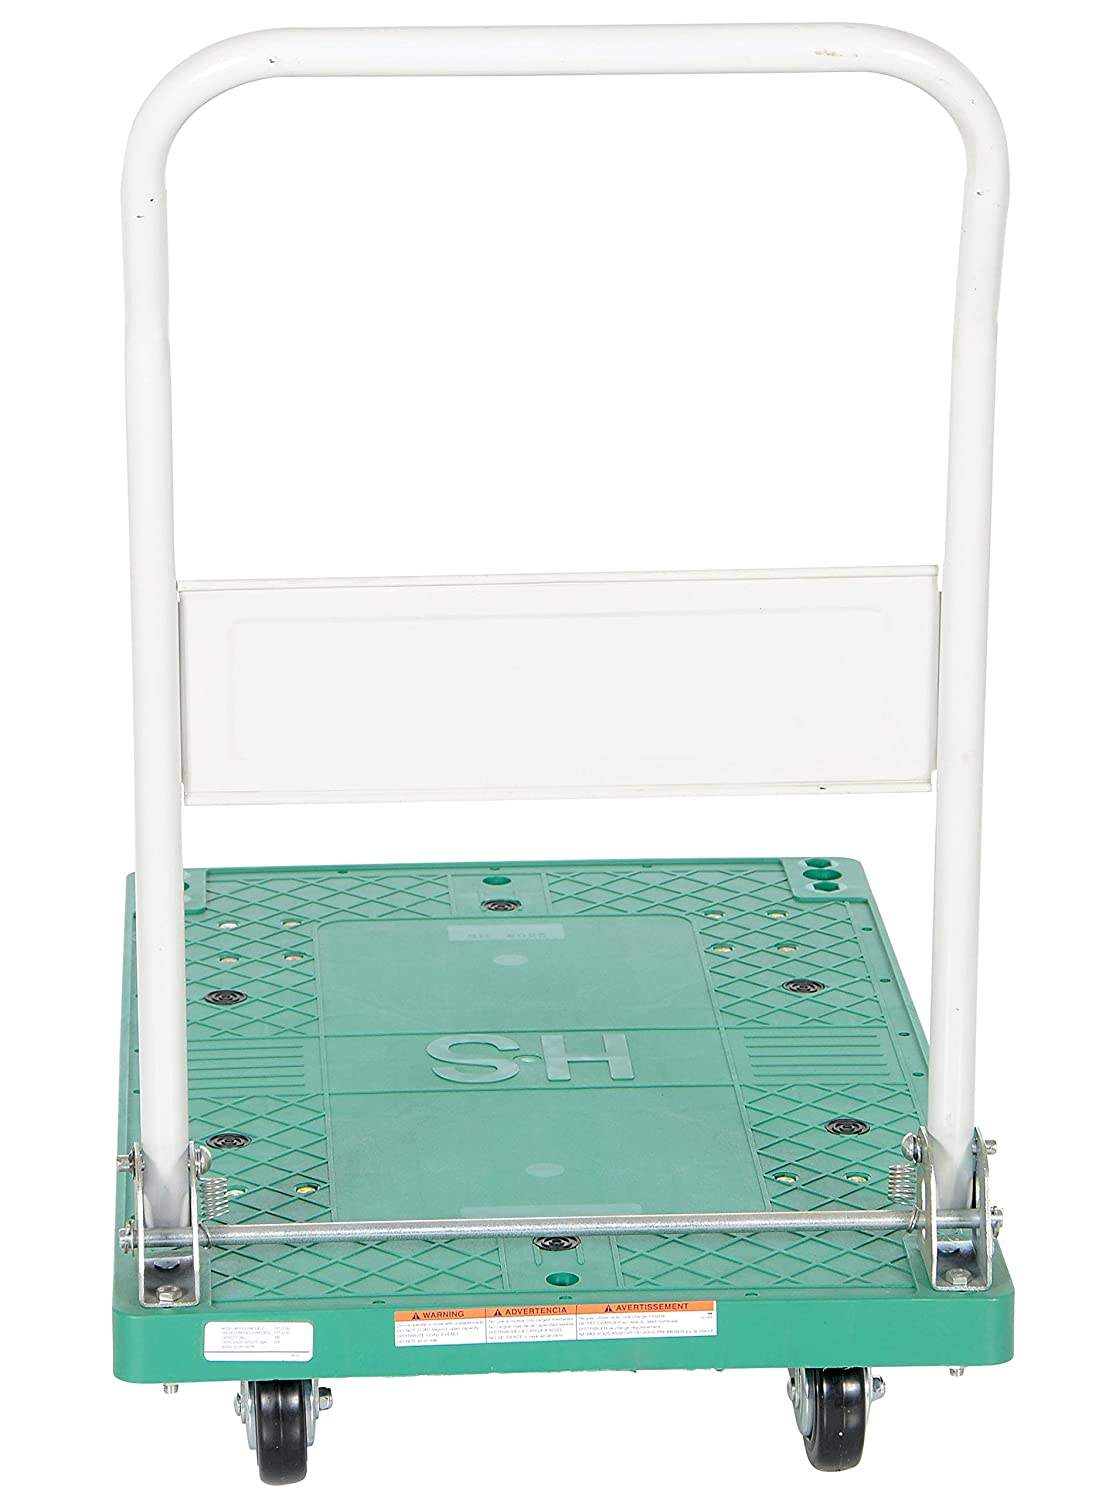 500 lbs Capacity 33 Length x 21 Width x 6-1//2 Height Deck 33 Length x 21 Width x 6-1//2 Height Deck Vestil Manufacturing Corp Vestil FPT-2133 Plastic Platform Truck with Fold Down Handle